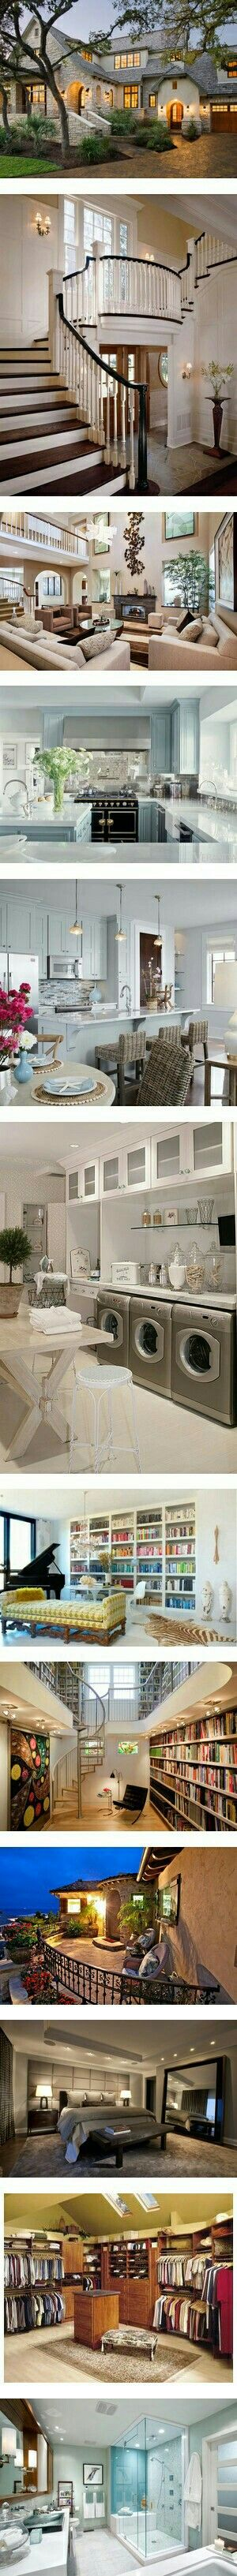 Space for all of us! My mom would love the laundry room..wow!